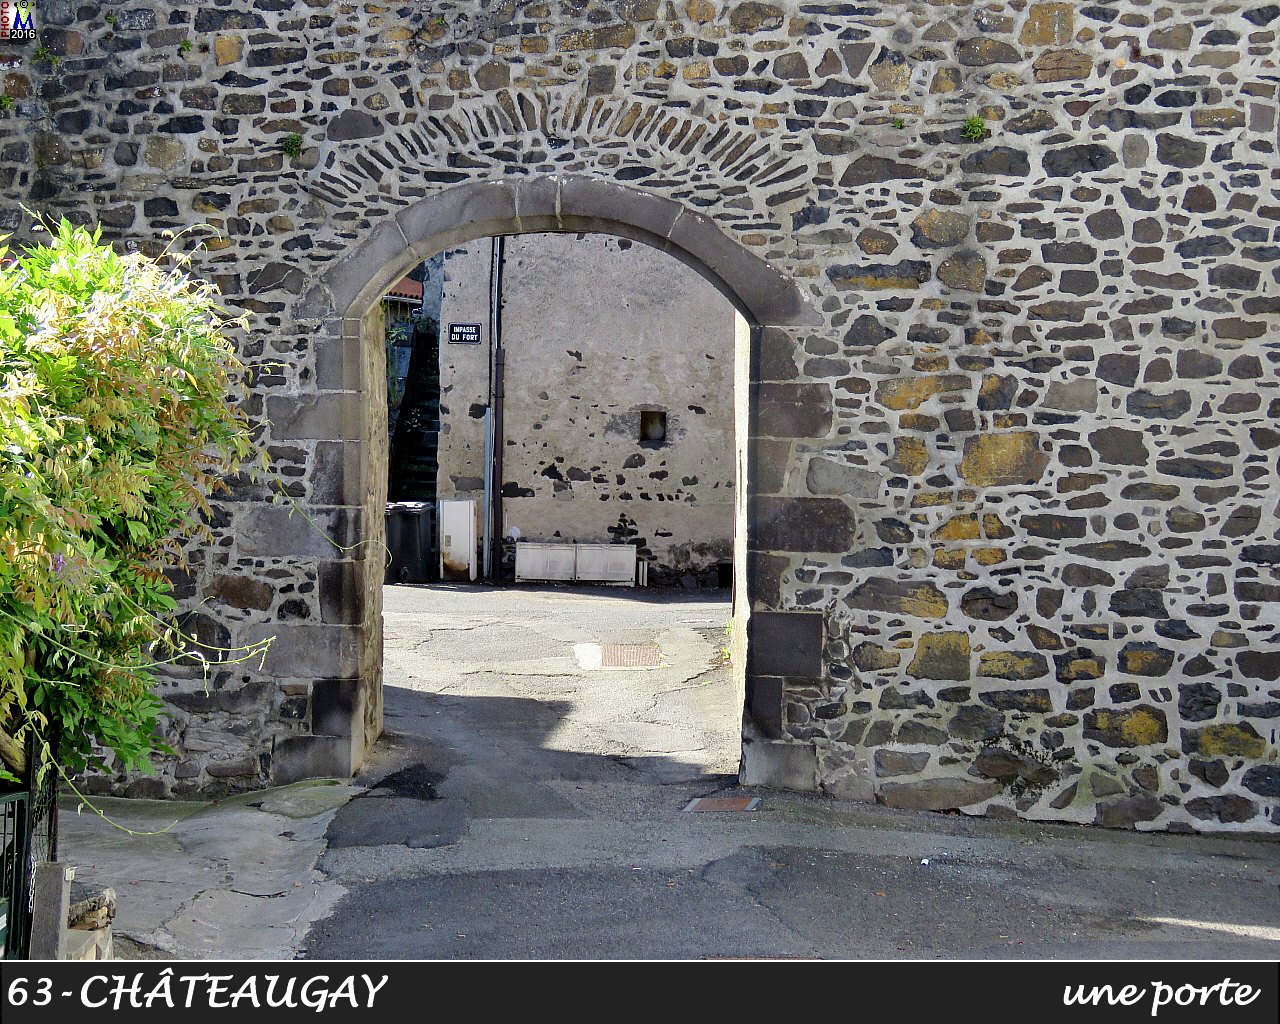 63CHATEAUGAY_porte_106.jpg